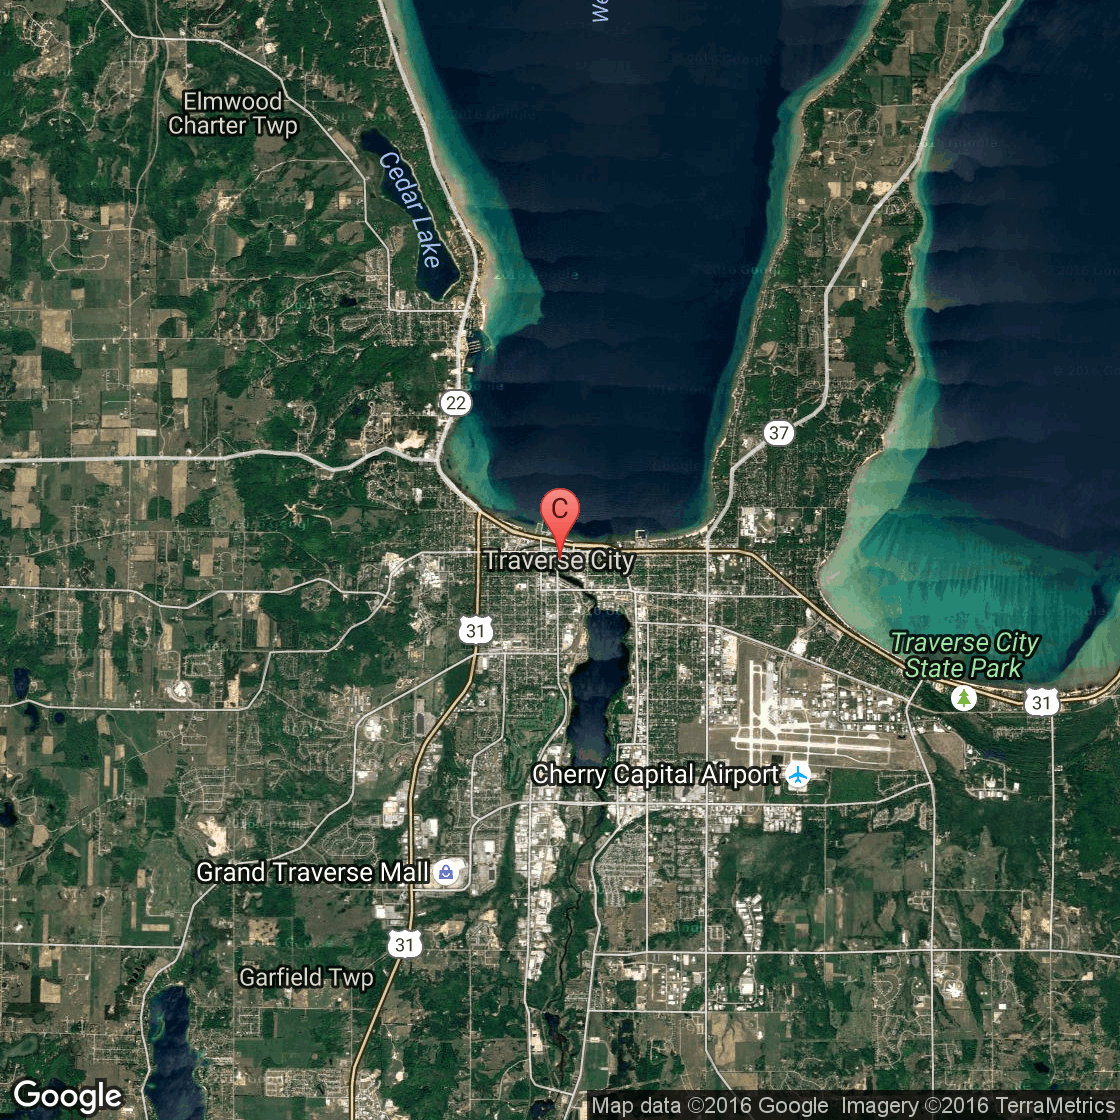 Camping in traverse city michigan usa today for Honeymoon spots in michigan